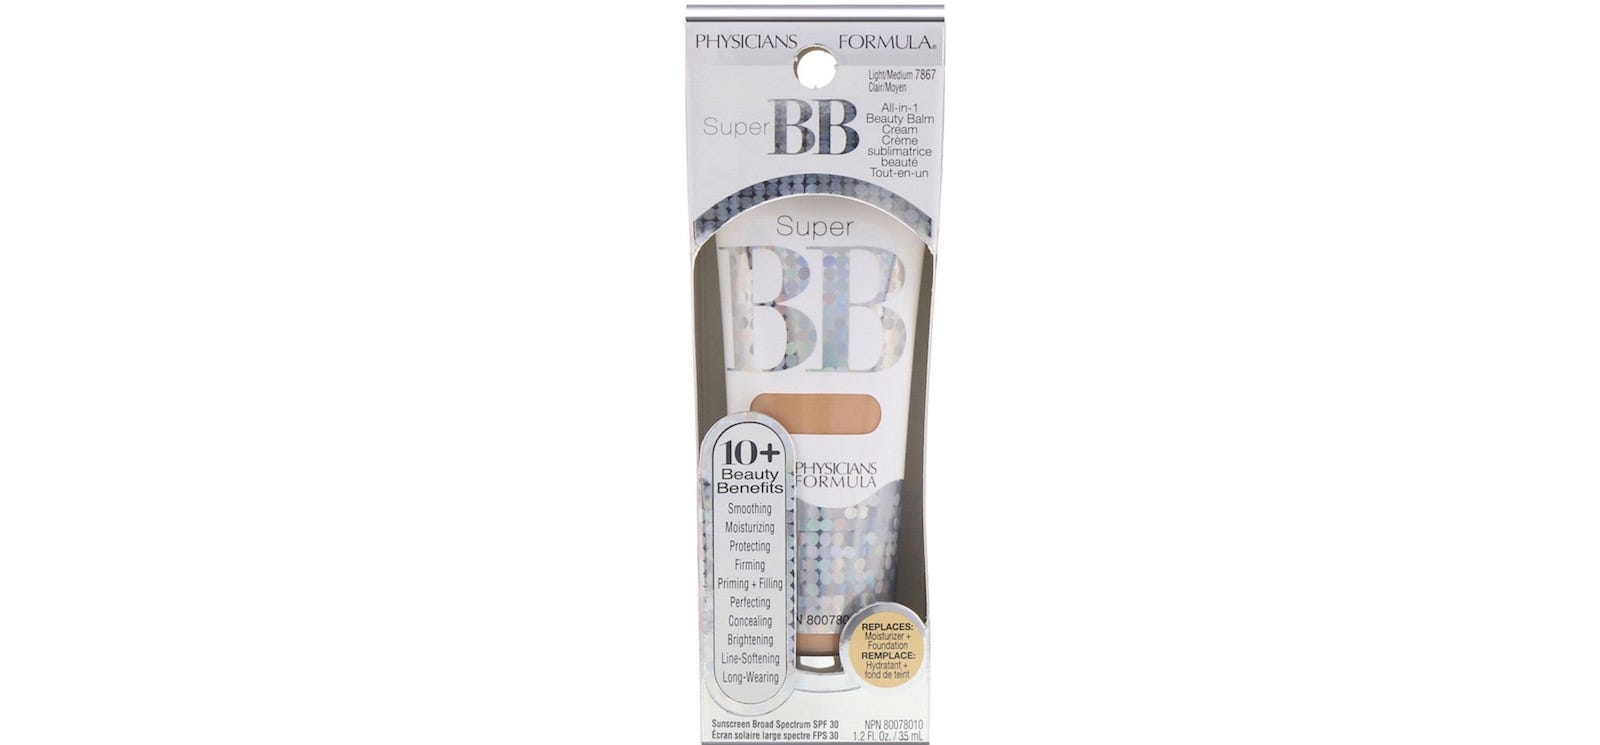 A tube of Physicians Formula Super BB in its cardboard package.